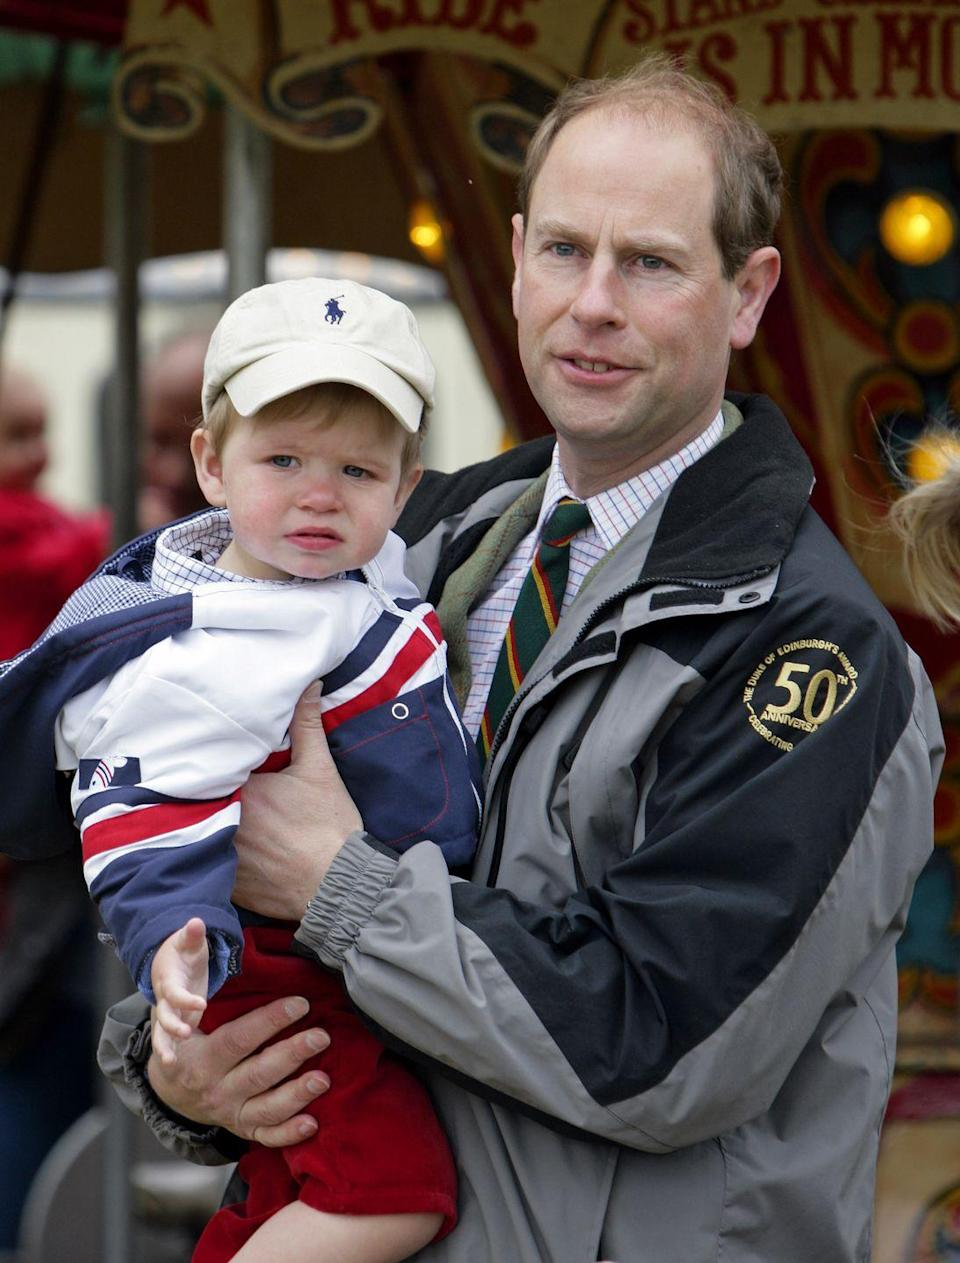 """<p>Prince Edward holds his son <a href=""""https://www.cosmopolitan.com/entertainment/celebs/a35337471/james-viscount-severn-facts/"""" rel=""""nofollow noopener"""" target=""""_blank"""" data-ylk=""""slk:James, Viscount Severn"""" class=""""link rapid-noclick-resp"""">James, Viscount Severn</a>, 17 months, while taking in the sights and sounds of the annual Royal Windsor Horse Show in Windsor. James is currently eleventh-in-line to the royal throne, following Edward (tenth).</p>"""